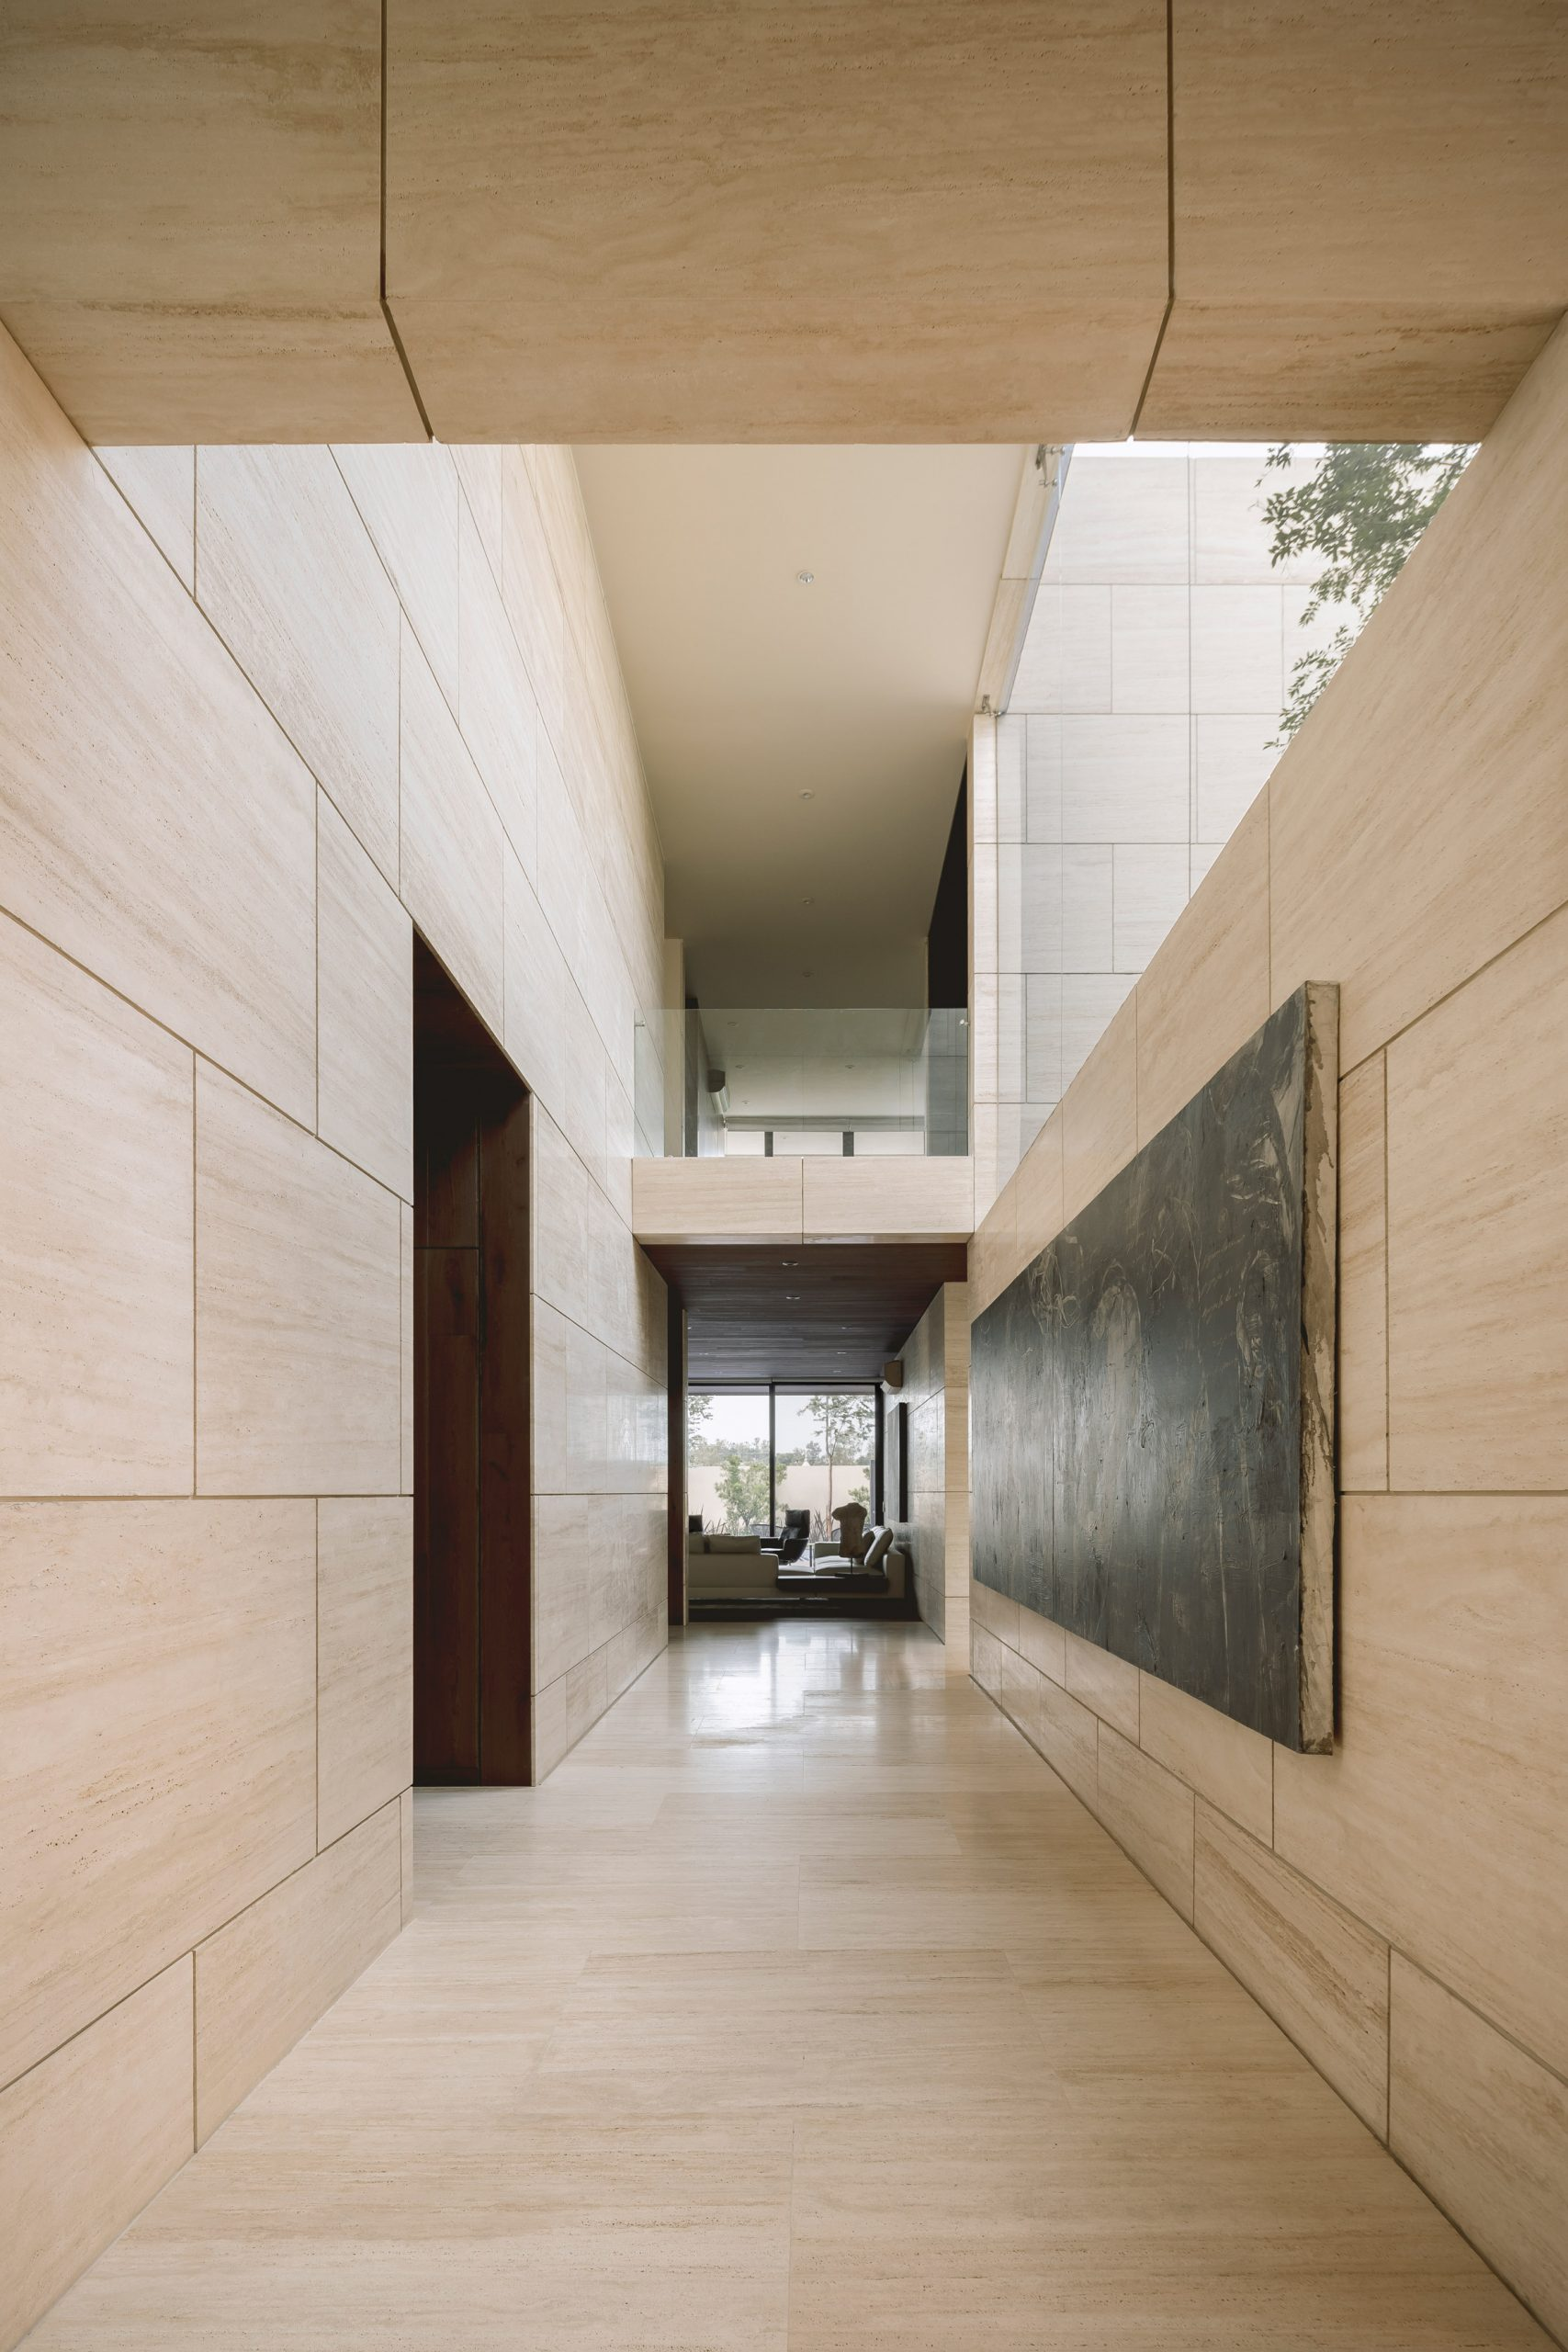 Travertine walls and art inside Casa ZTG by 1540 Arquitectura